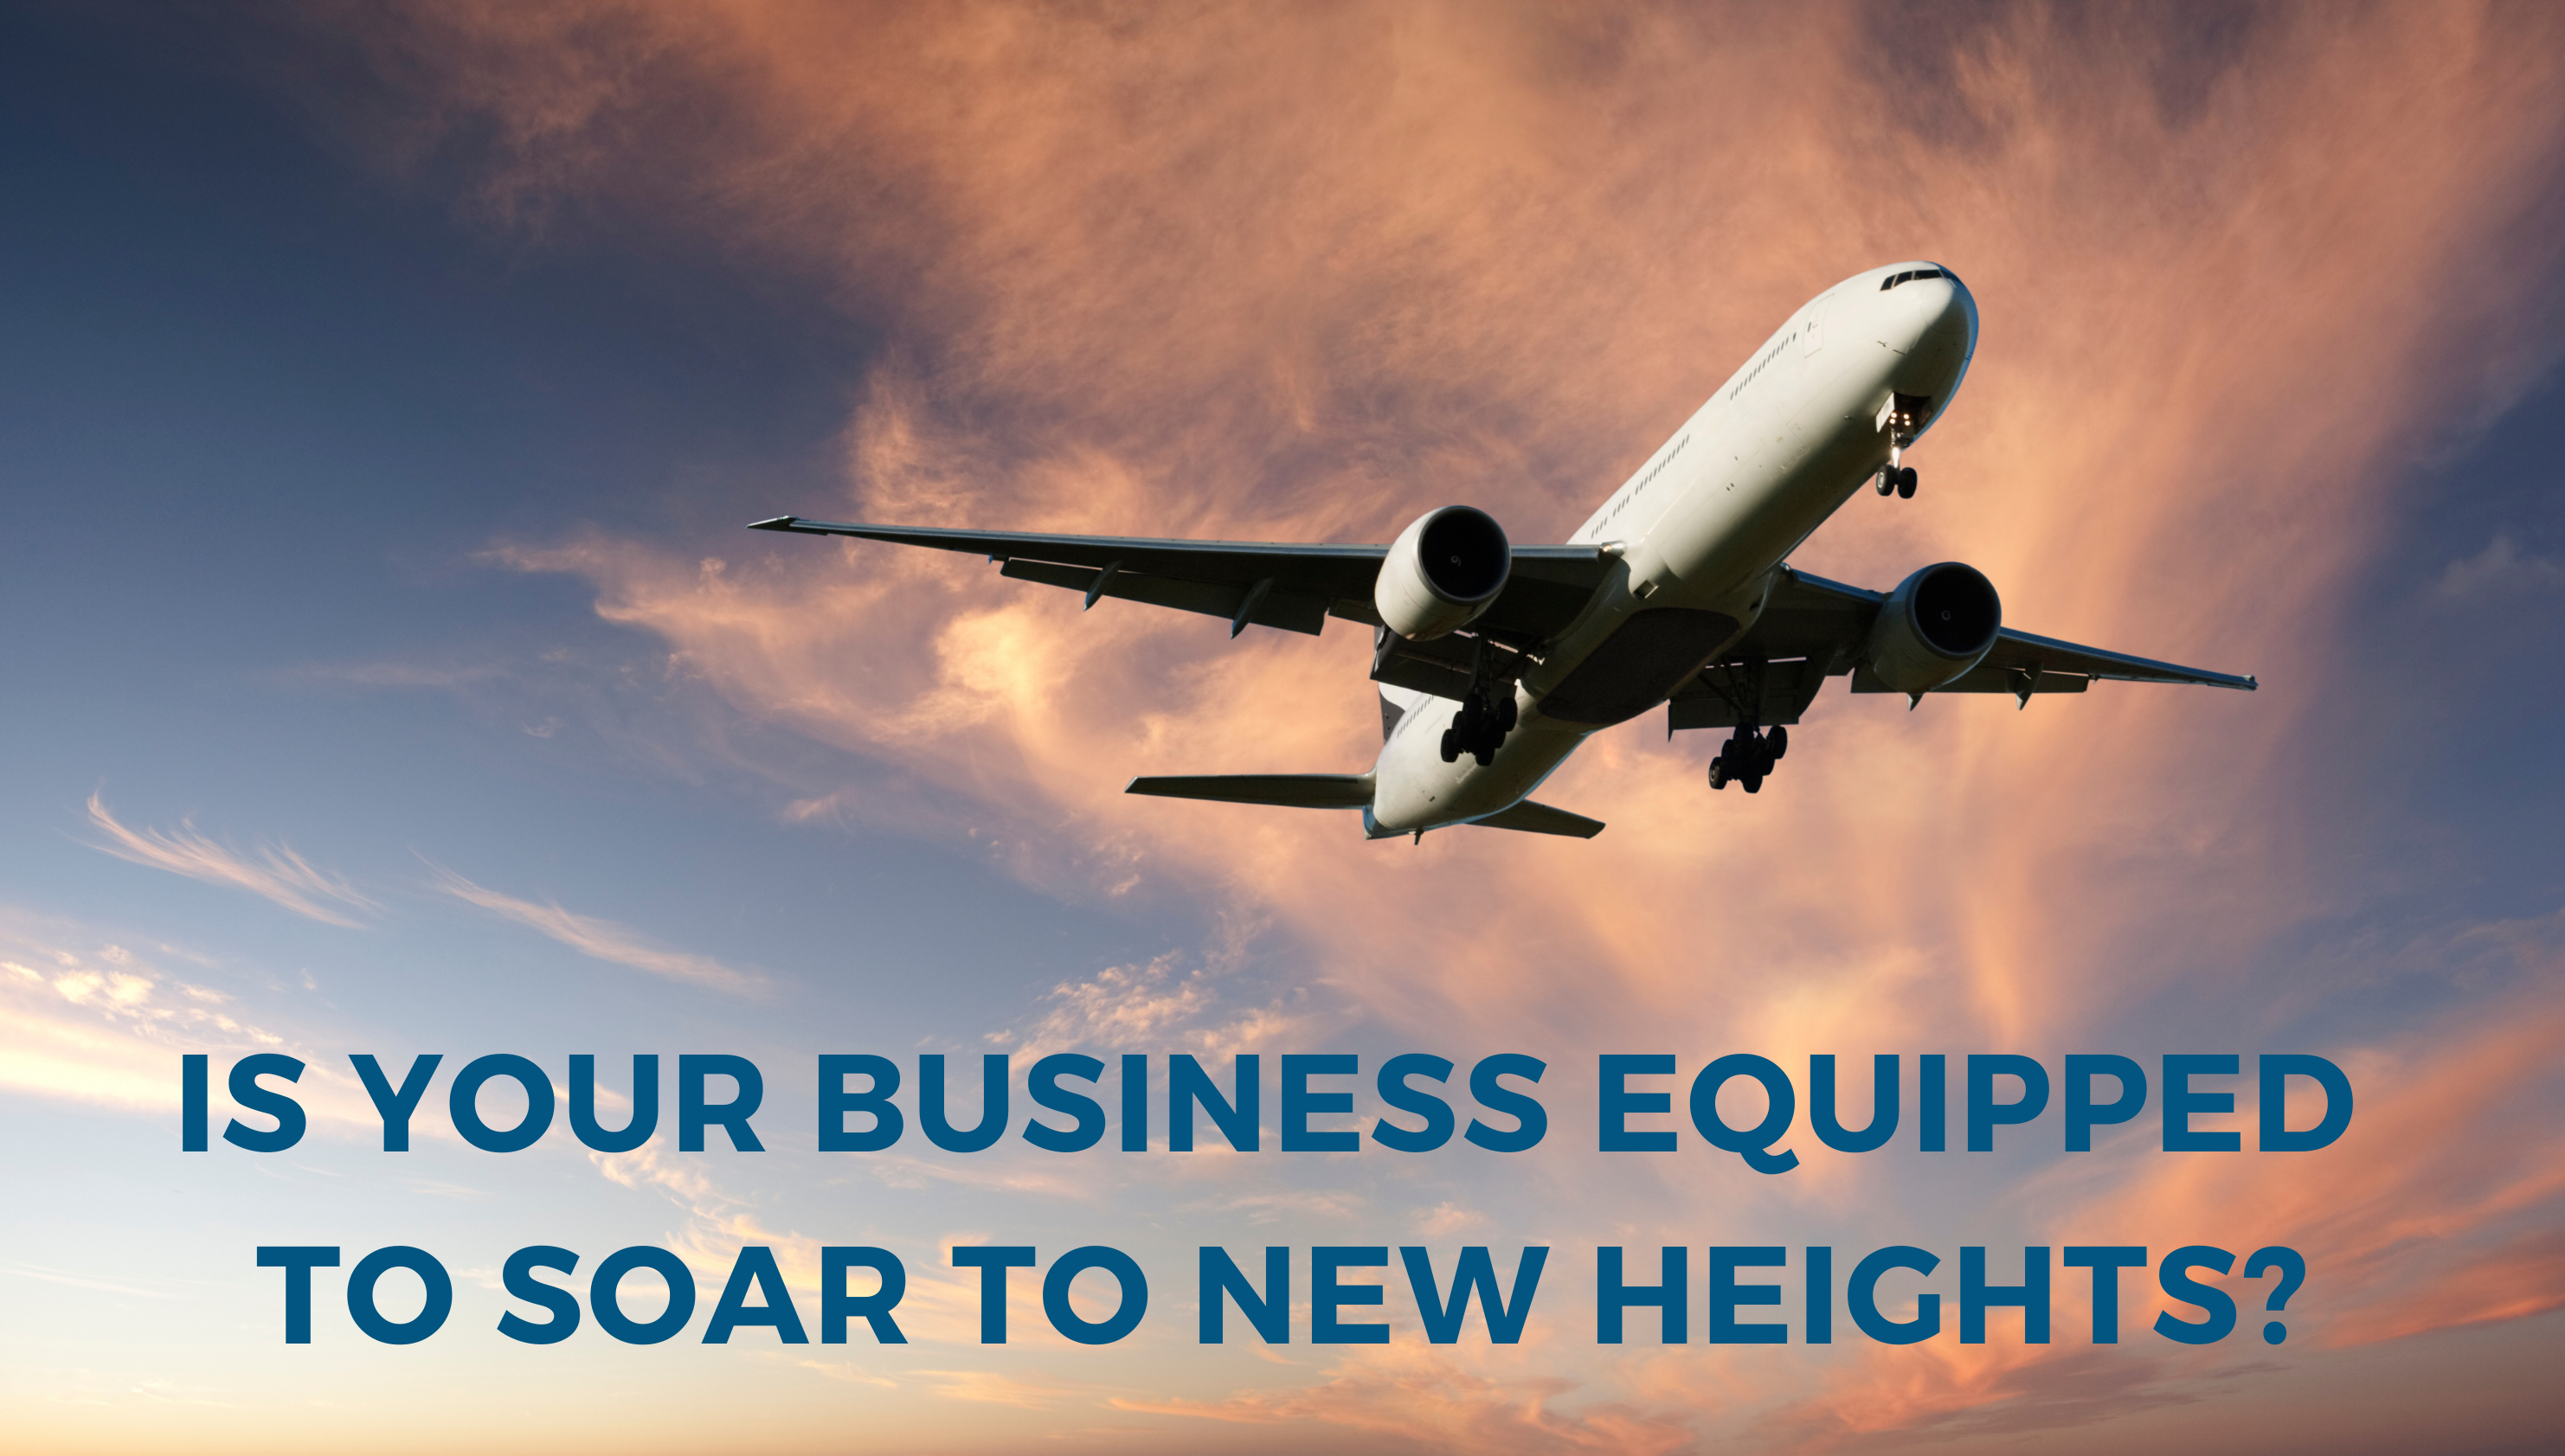 Is your business equipped to soar to new heights?